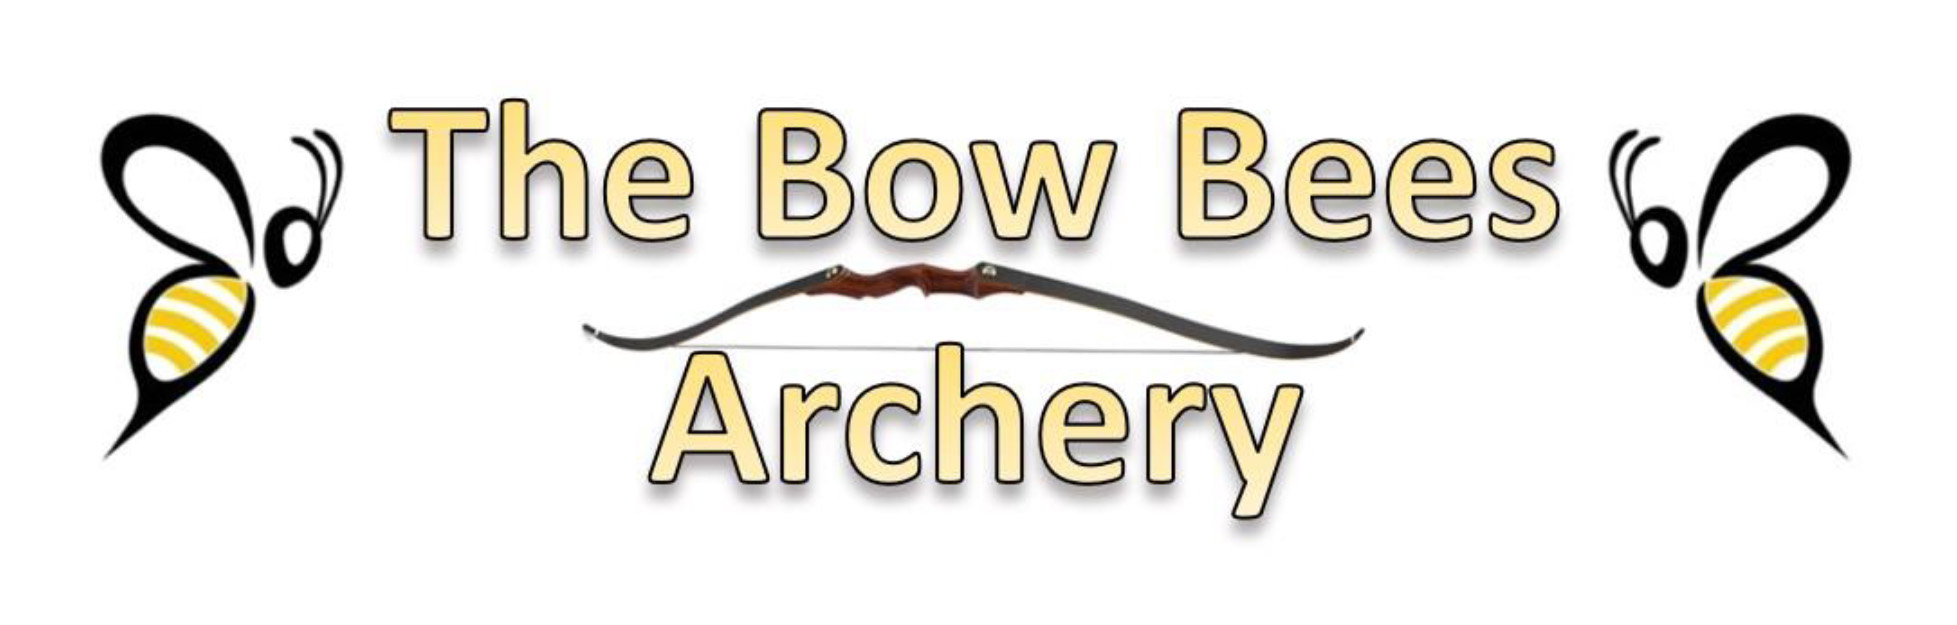 Bow Bees Archery